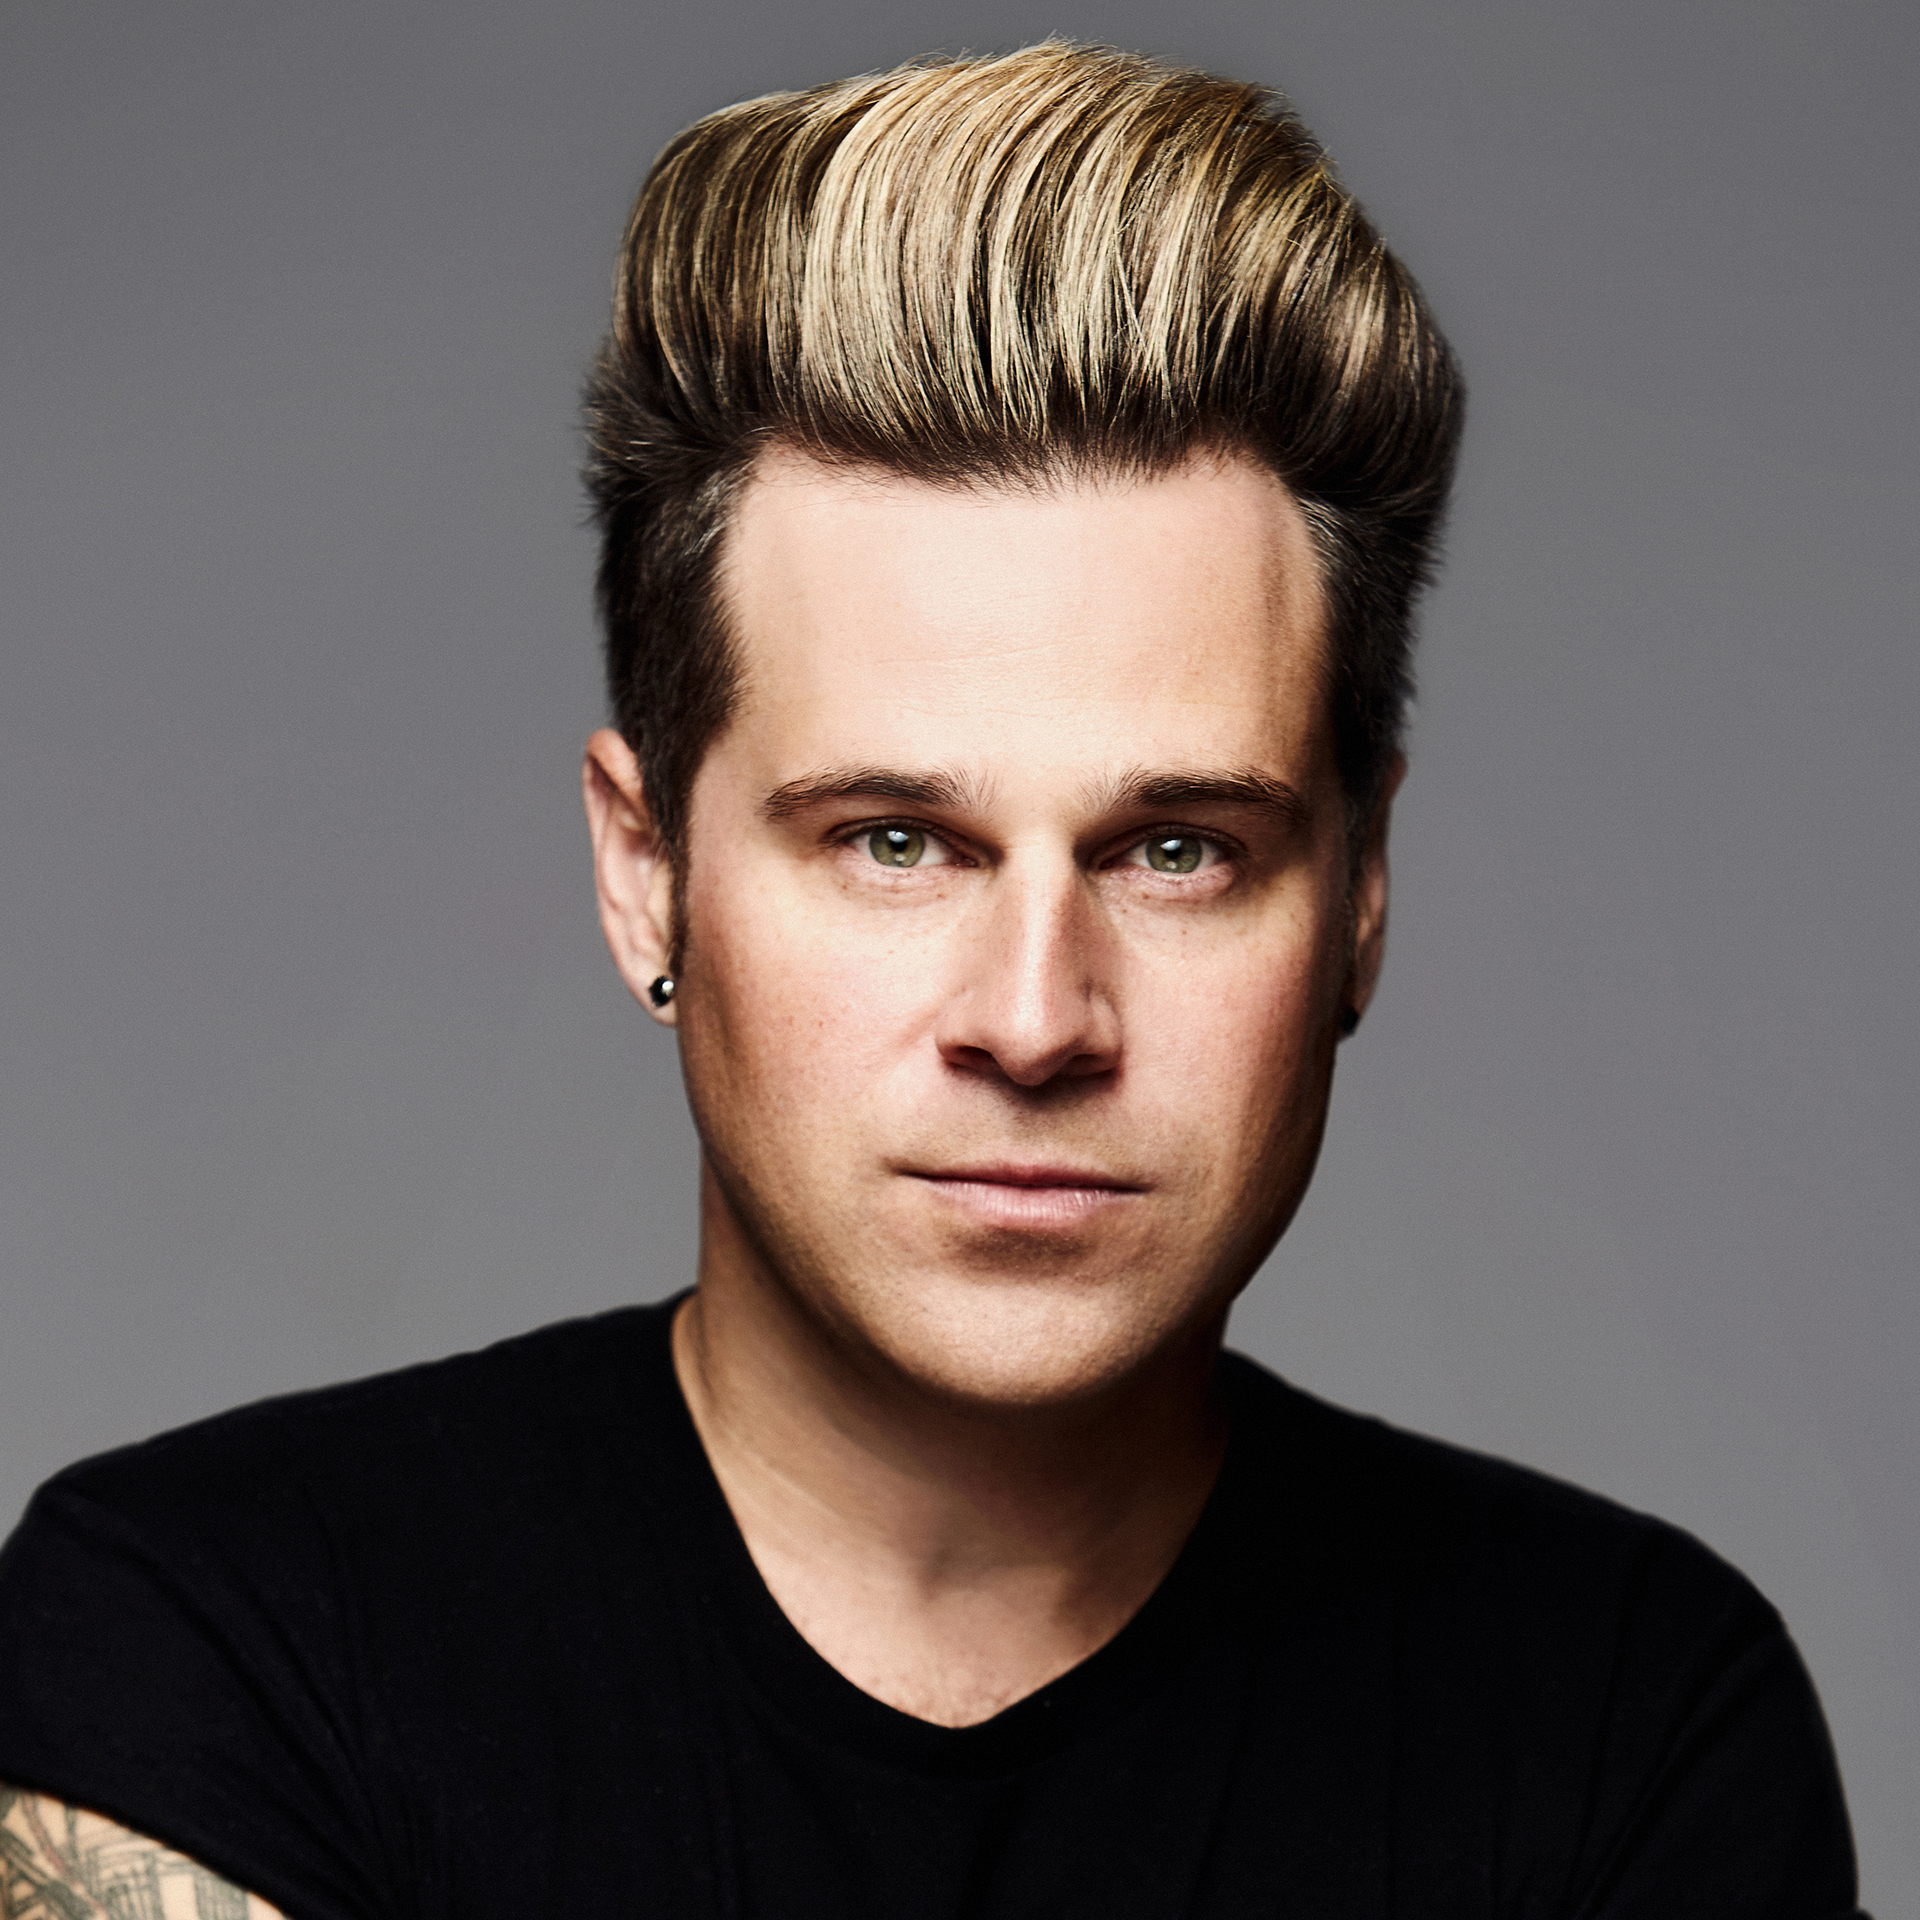 RYAN CABRERA - Guitarist, songwriter, and Texas native Ryan Cabrera began as a lead singer for the Dallas band Rubix Groove before pursuing his solo career. Following the 2001 release of independent album Elm St., he released his first major-label album, Take It All Away, on August 17, 2004. Earlier in the year, Cabrera had become known for his up-tempo pop-rock single